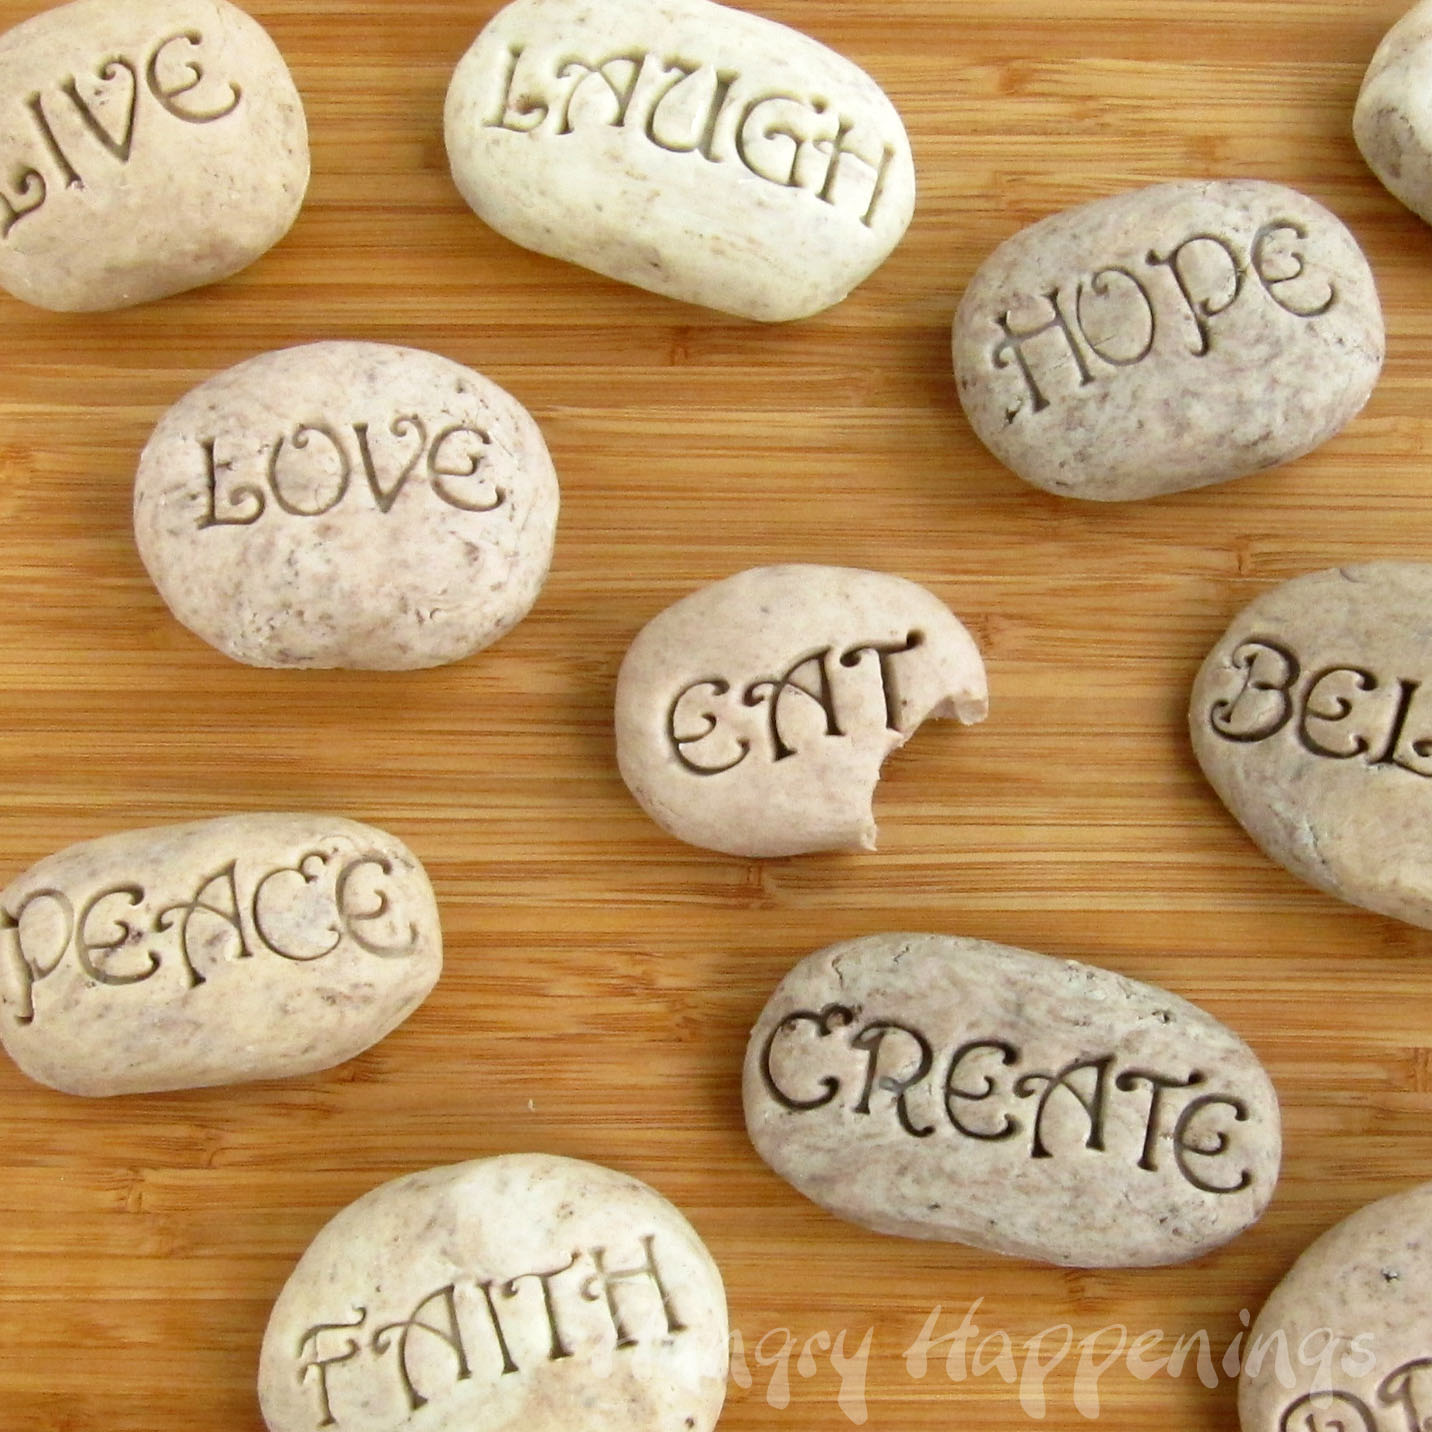 Sweet Serenity Stones - Hungry Happenings Recipes